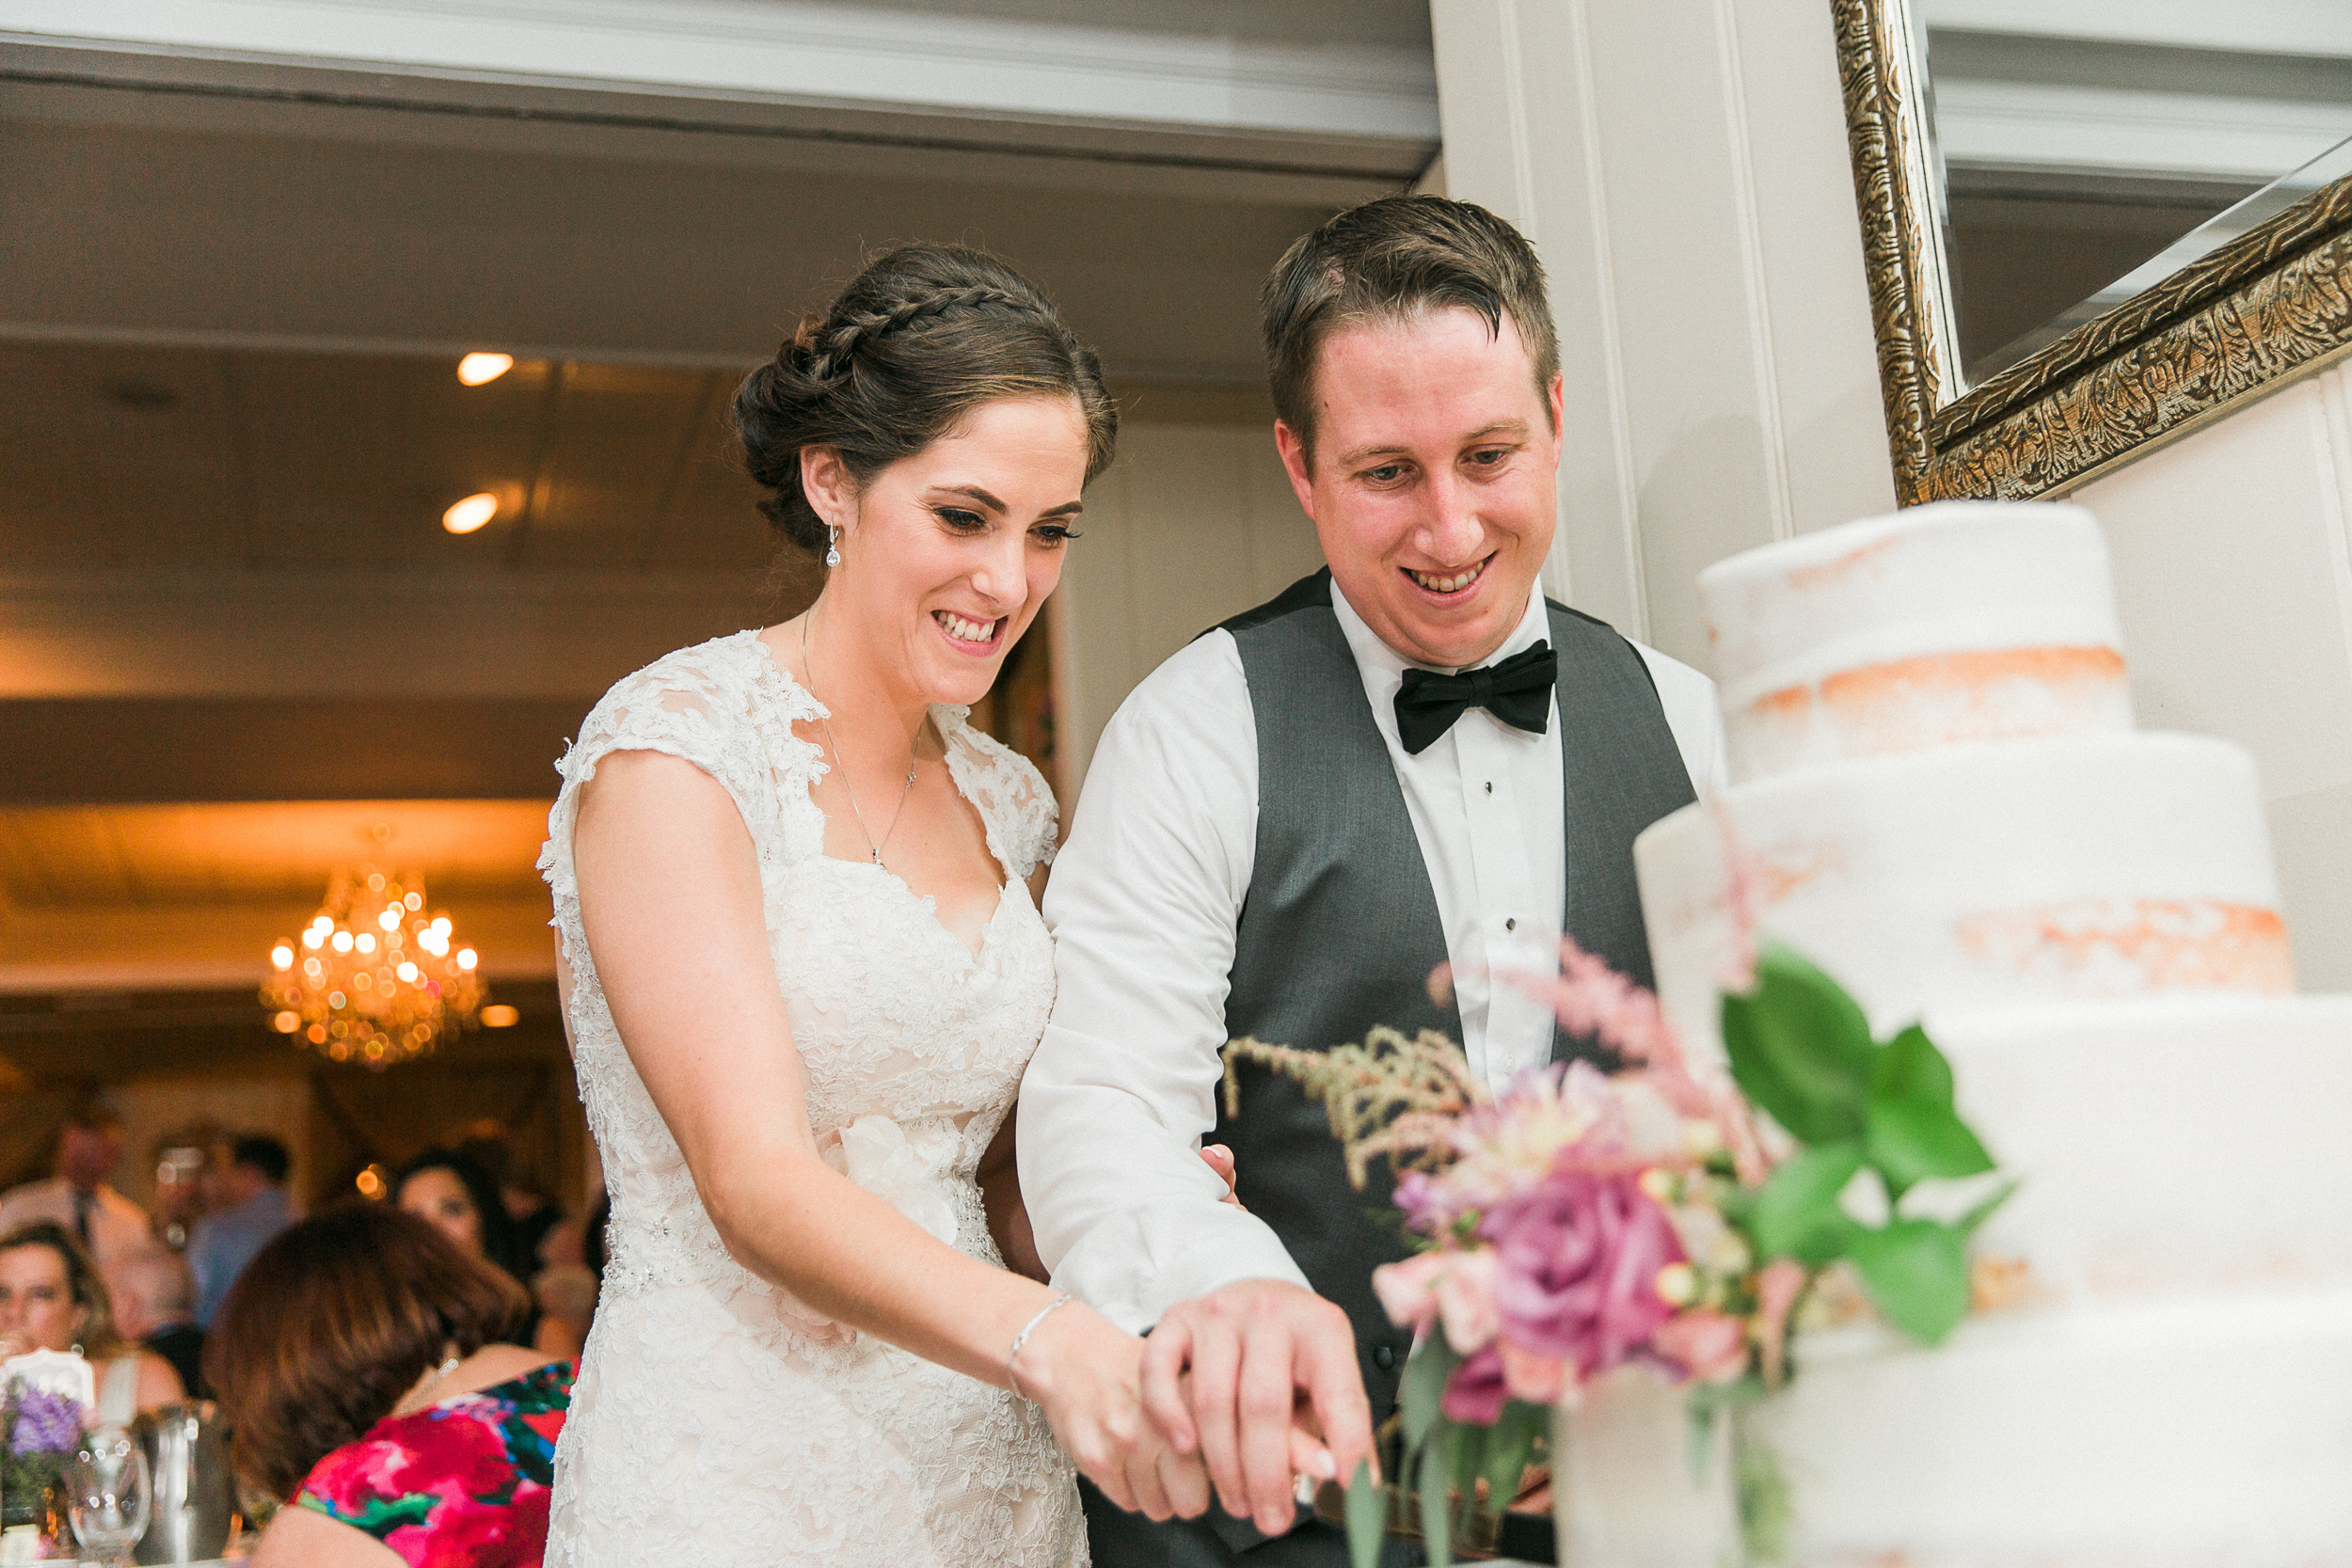 Washington Crossing PA Wedding WRHPhotography-54.jpg